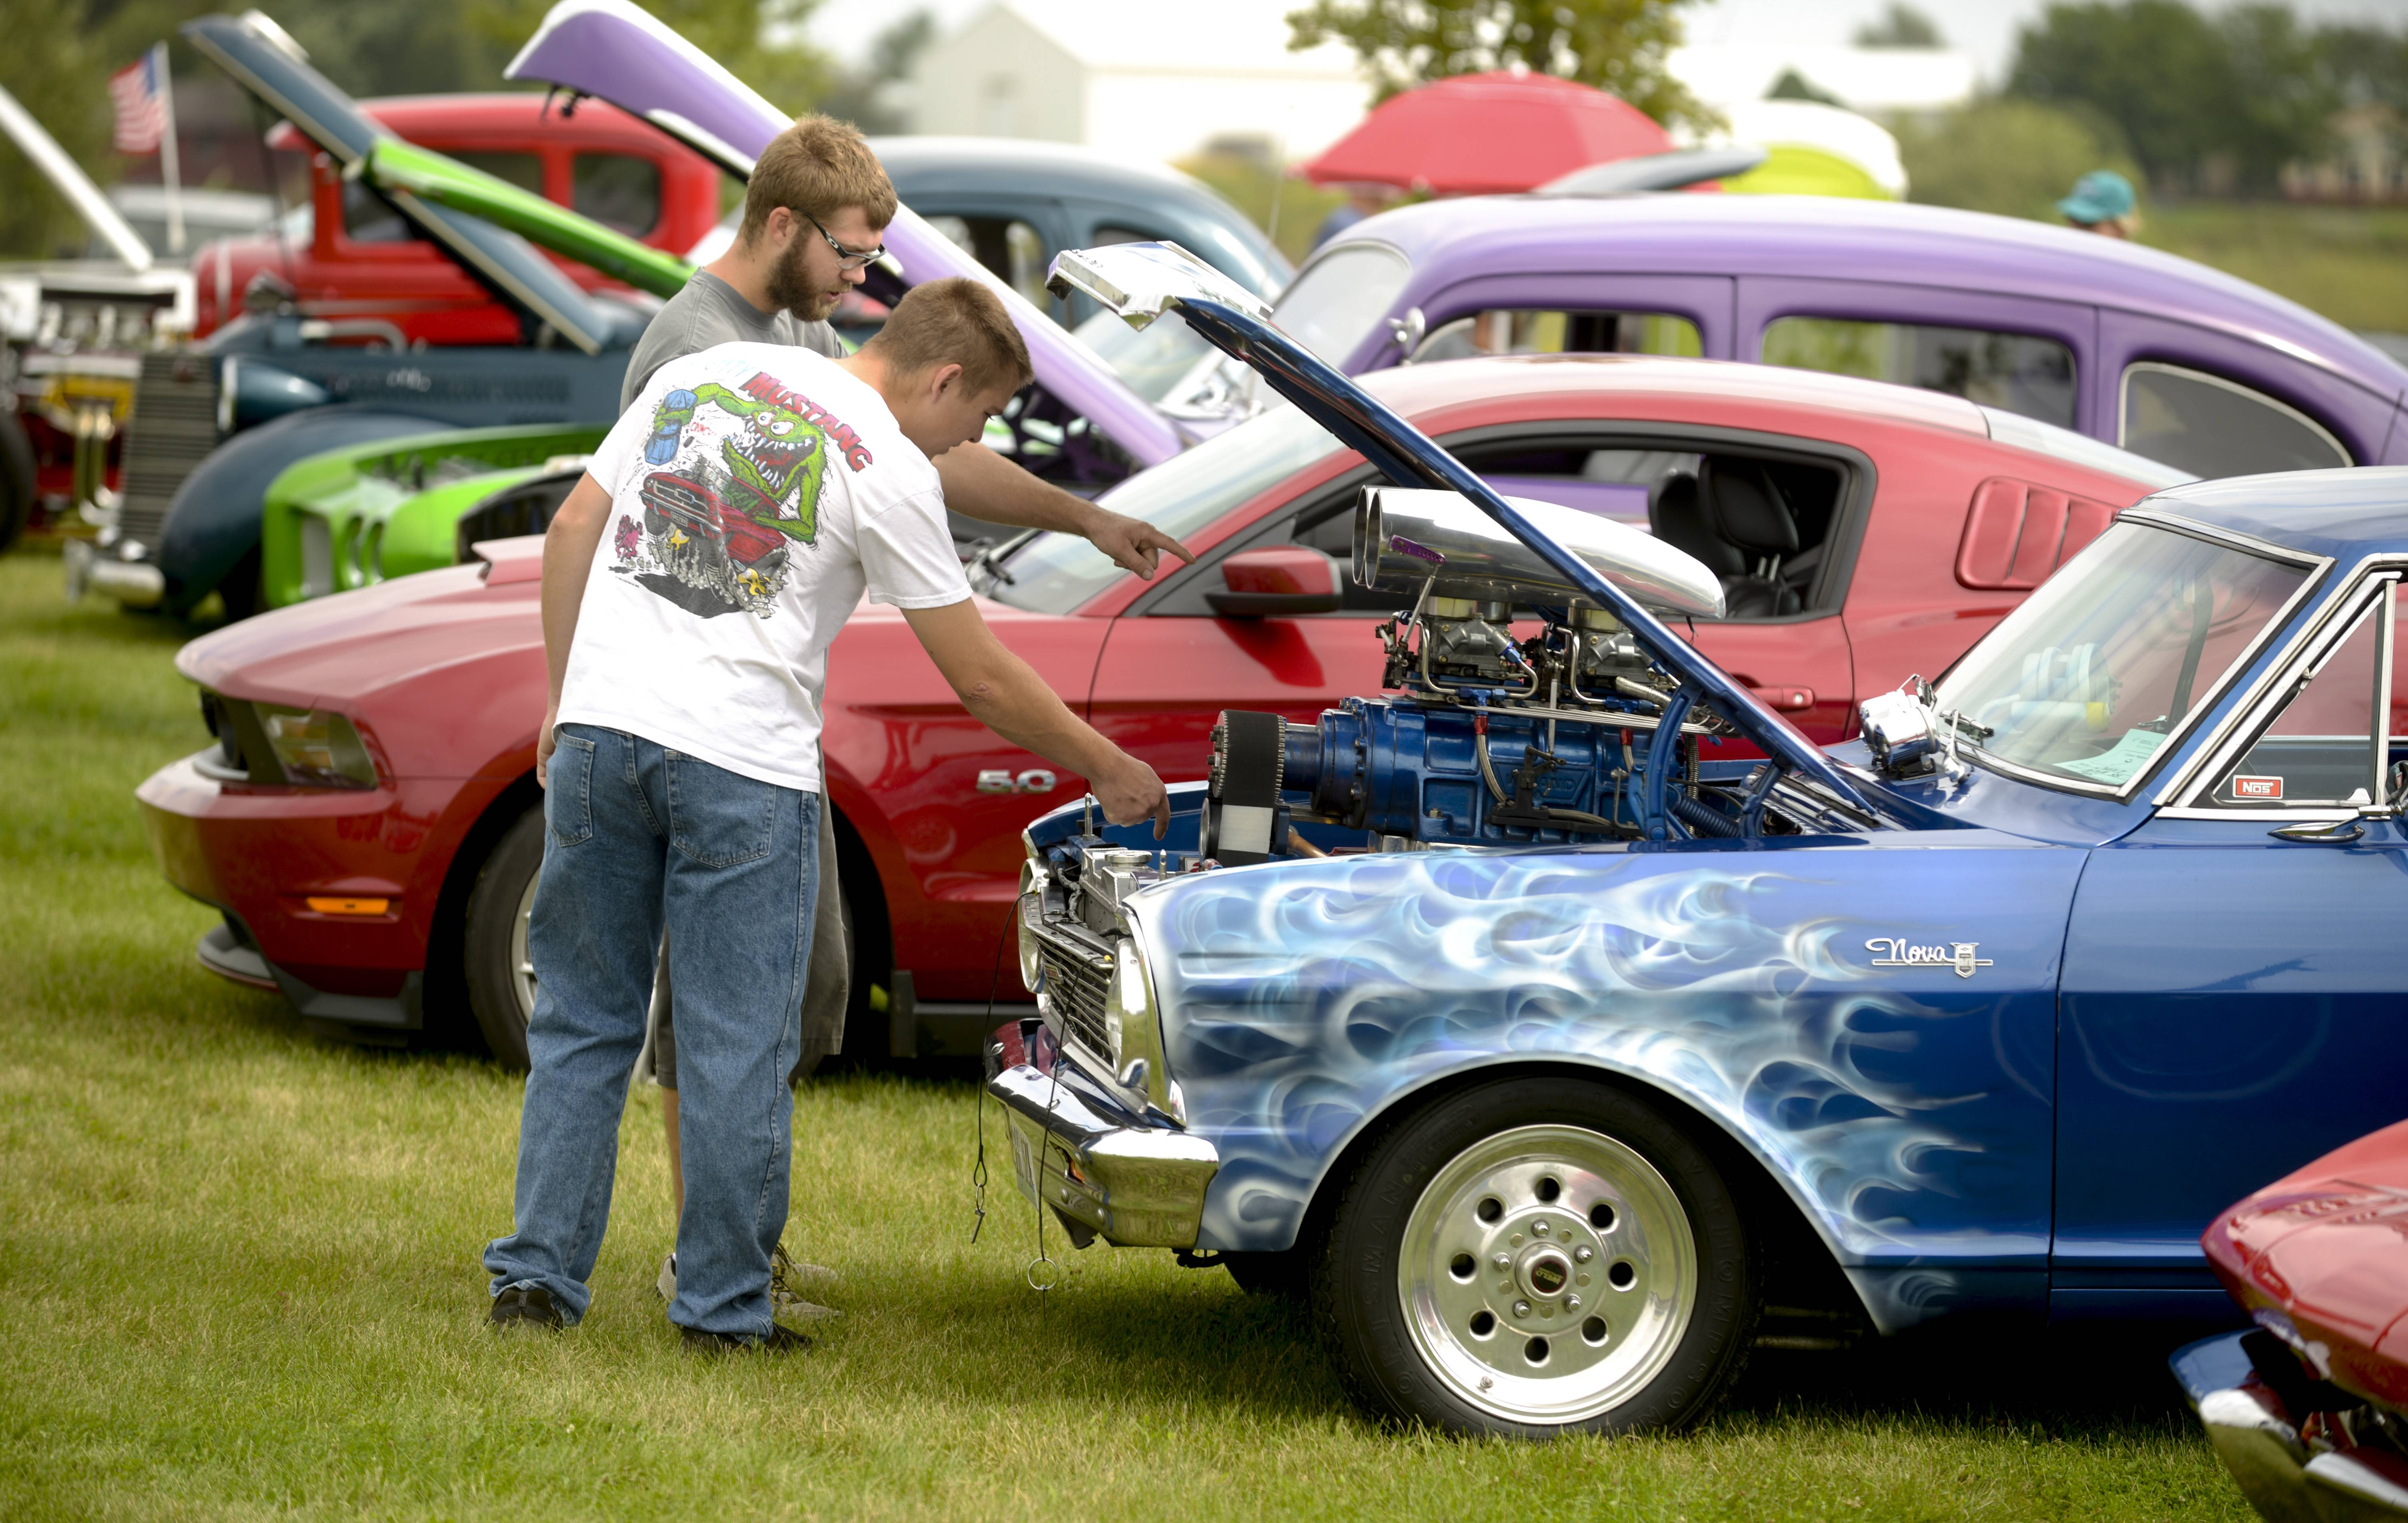 Hayden Senese and Evan Olson of Sugar Grove check out a souped-up 1965 Chevy Nova at Kane County Sheriff Pat Perez's Eighth Annual Car and Motorcycle Show at the Martin family farm in Elburn.